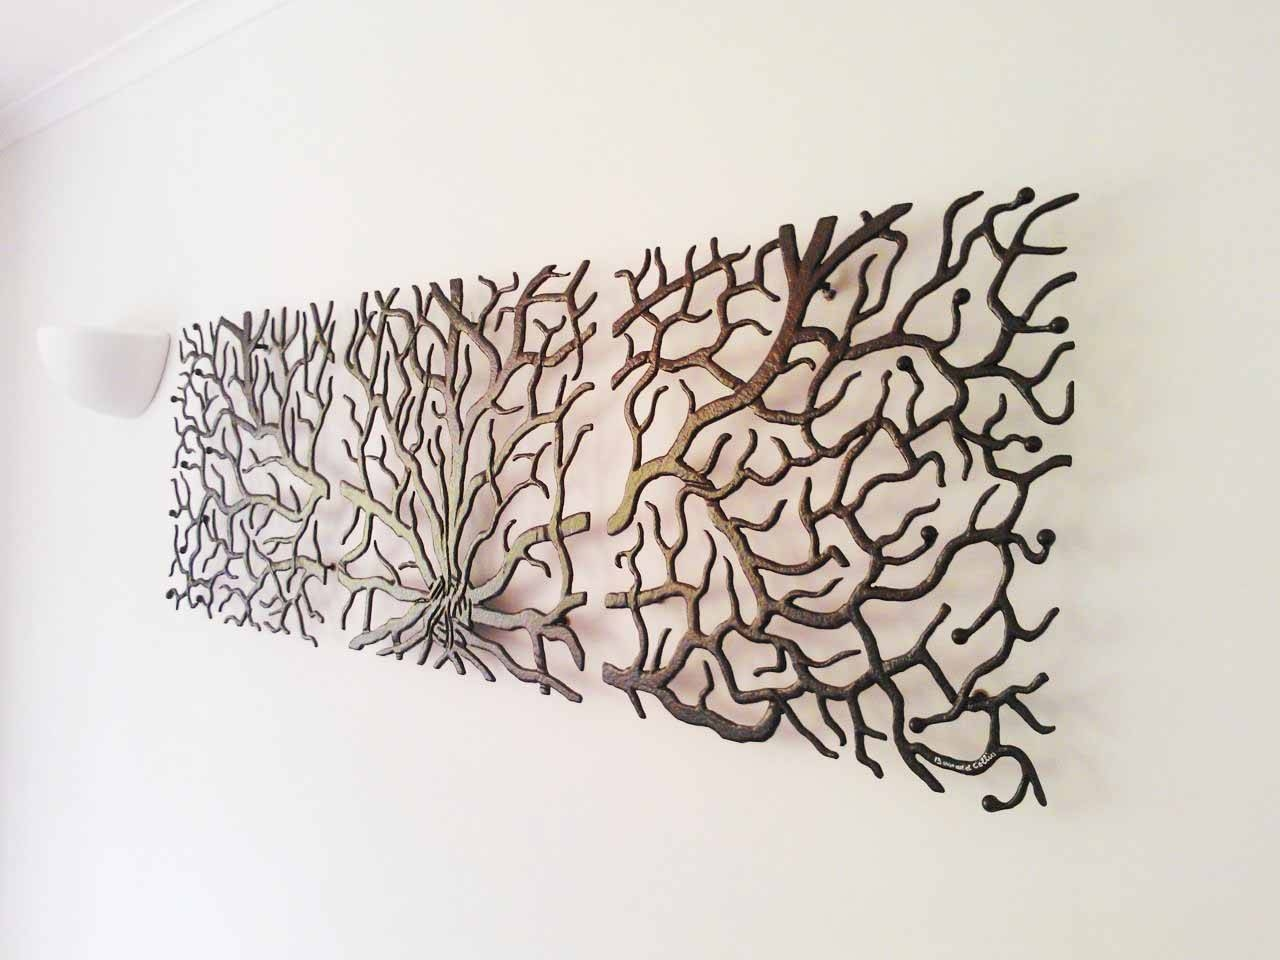 Articles With Tree Of Life Metal Wall Art Sculptures Home Decor Regarding Latest Metal Tree Wall Art Sculpture (View 3 of 20)